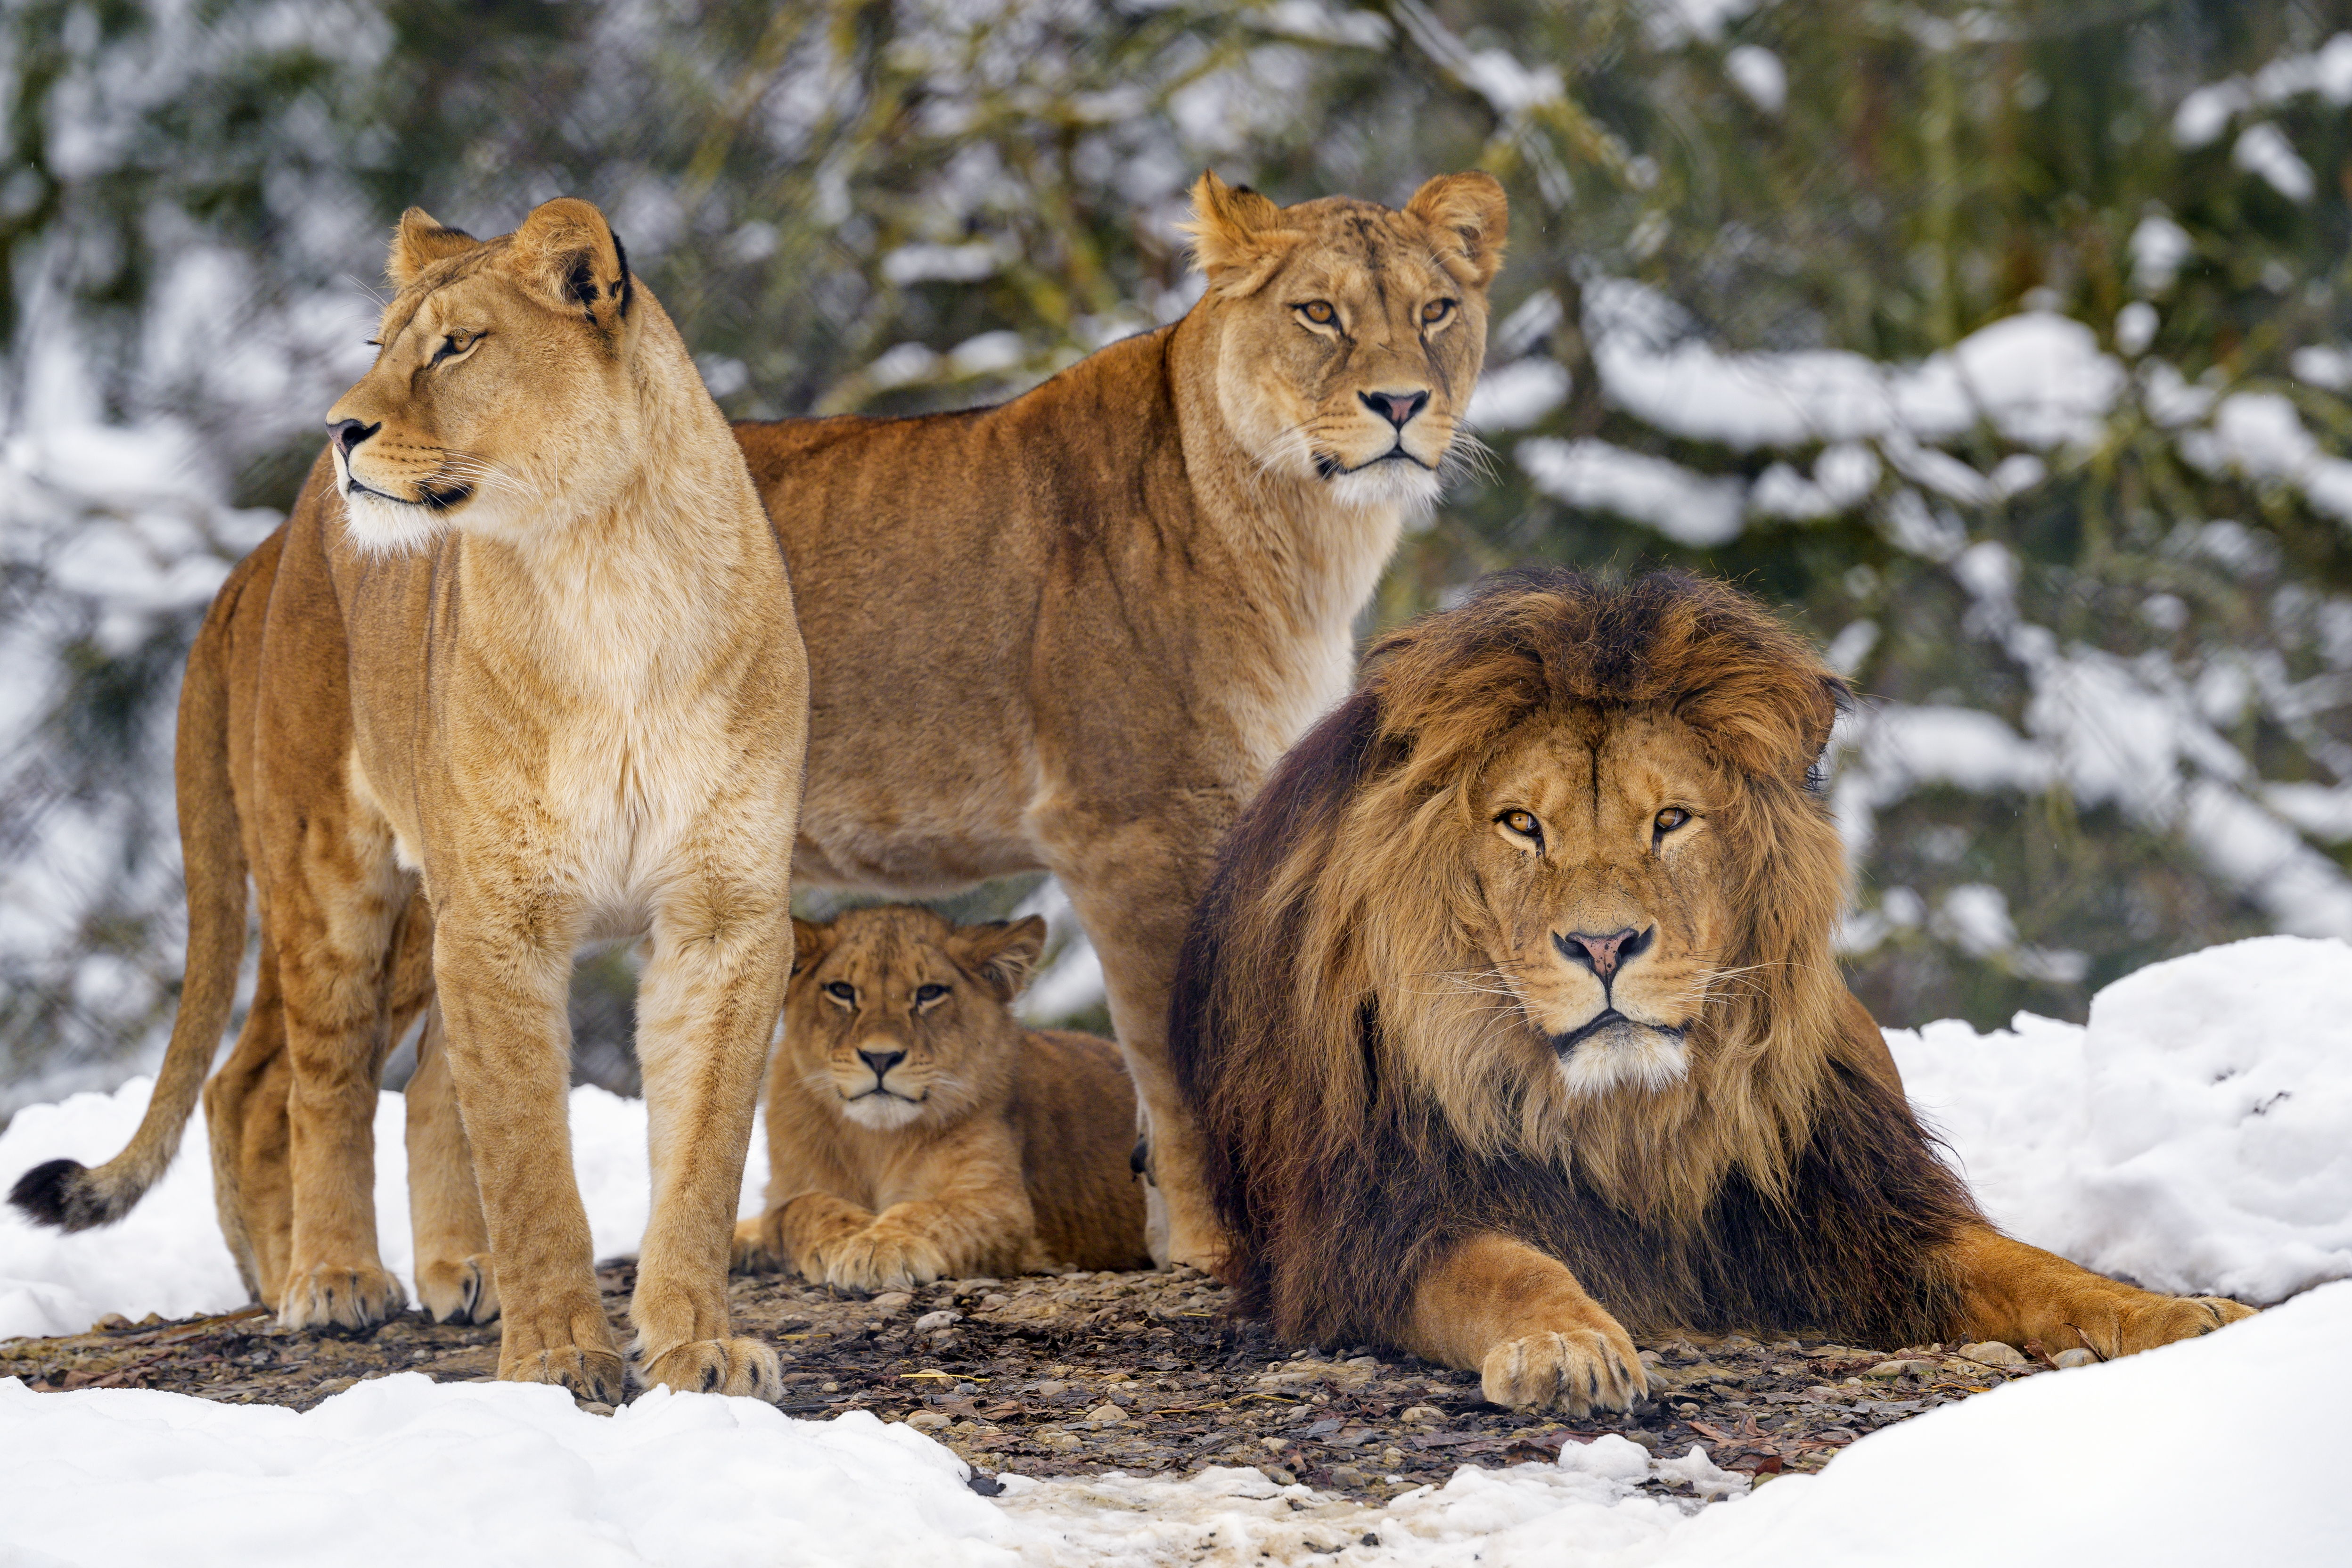 53830 download wallpaper Animals, Predators, Brown, Wildlife, Lions screensavers and pictures for free